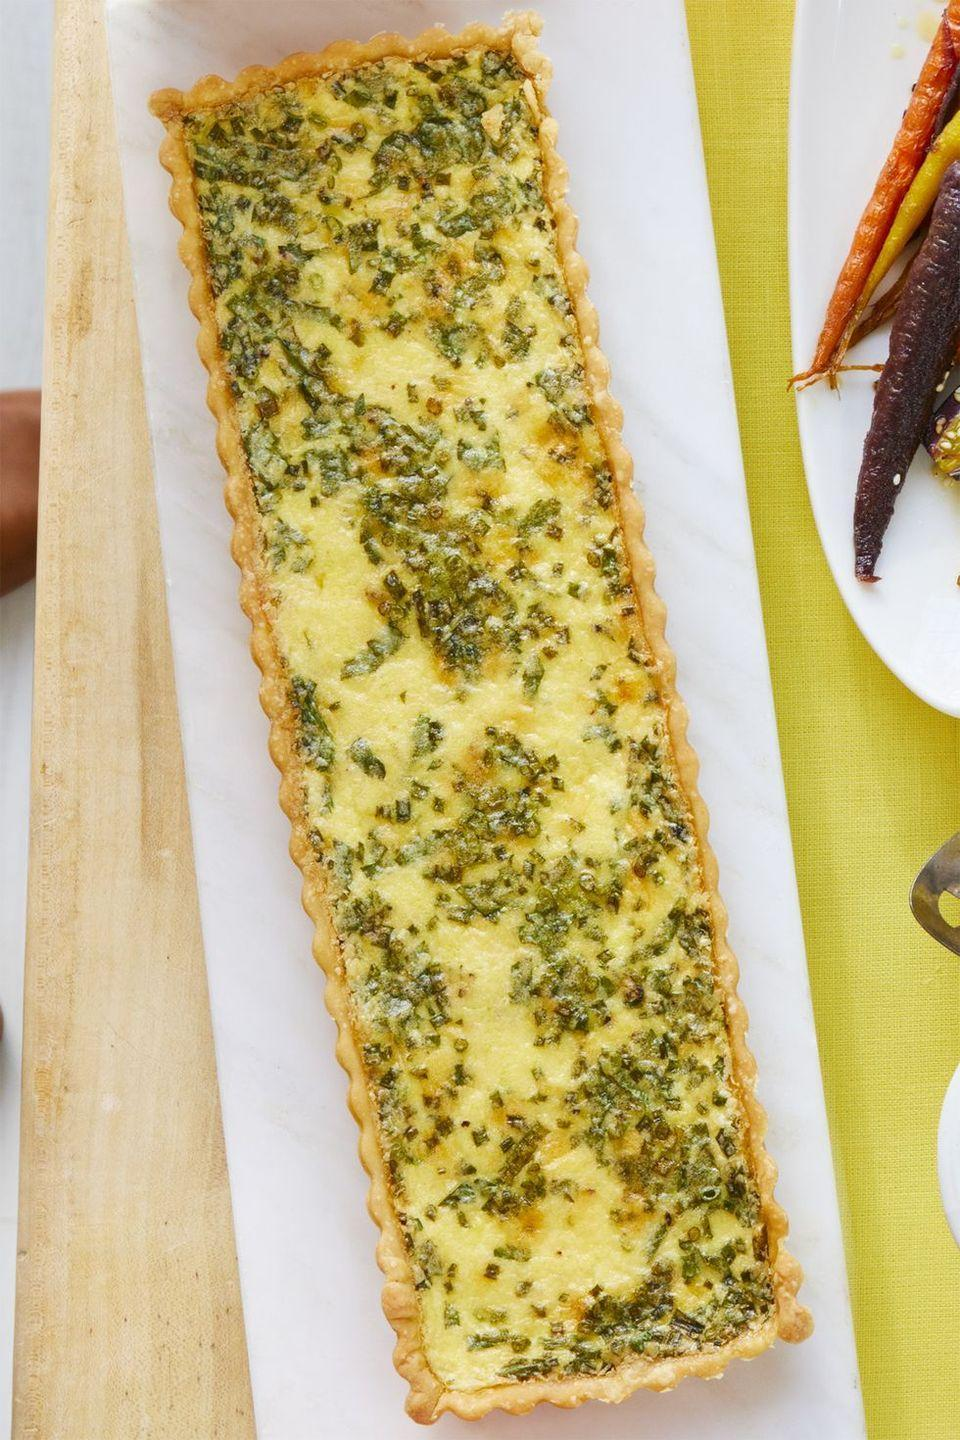 """<p>Because what's brunch without a cheesy quiche?</p><p><em><a href=""""https://www.womansday.com/food-recipes/food-drinks/a19122269/cheese-and-herb-quiche-recipe/"""" rel=""""nofollow noopener"""" target=""""_blank"""" data-ylk=""""slk:Get the recipe from Woman's Day »"""" class=""""link rapid-noclick-resp"""">Get the recipe from Woman's Day »</a></em></p>"""